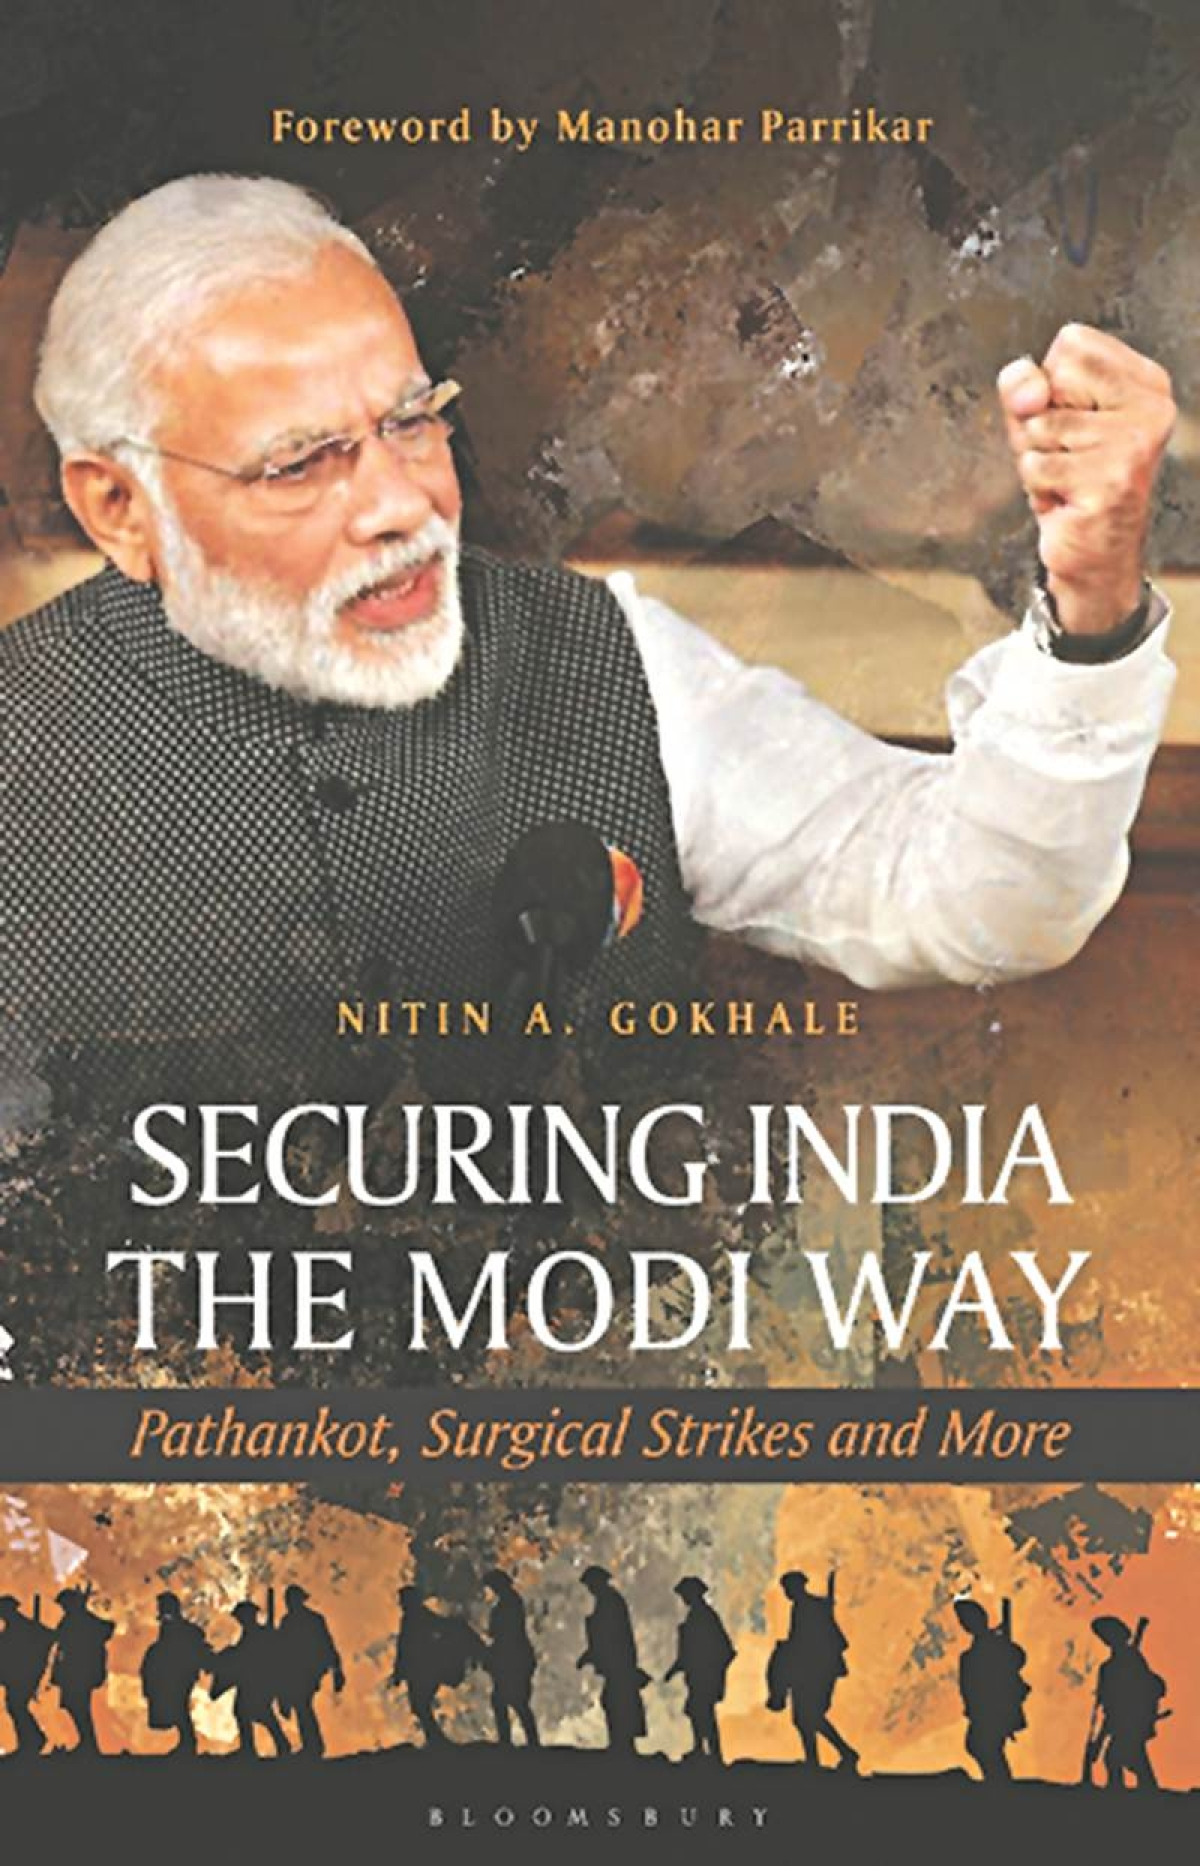 Securing India the Modi Way: Pathankot, Surgical Strikes and More- Review